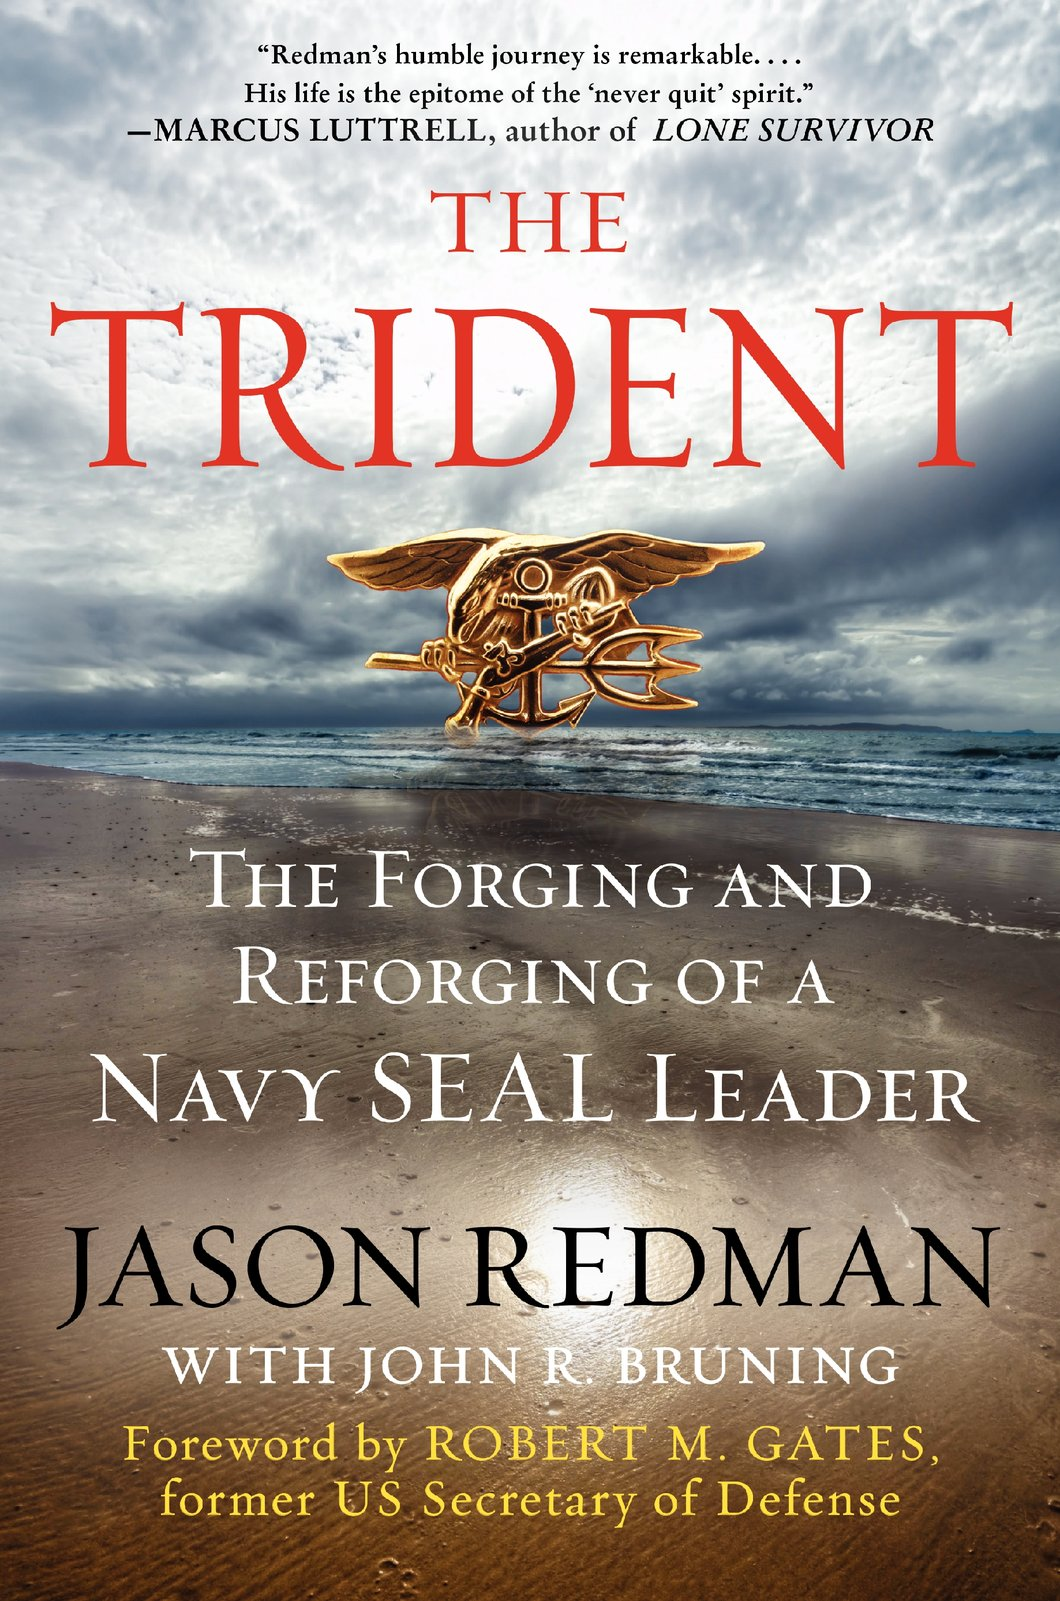 Trident_Book_Cover_530x@2x.jpg